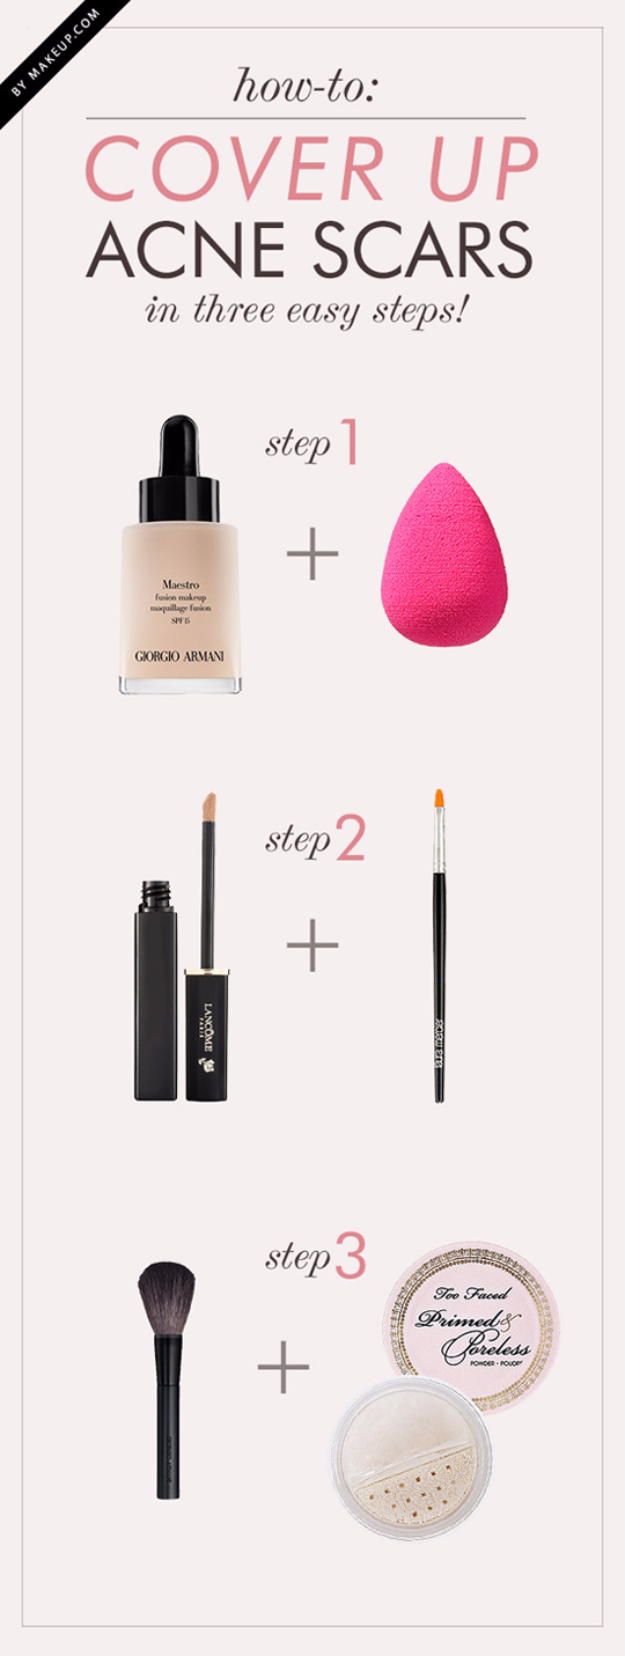 Cool DIY Makeup Hacks for Quick and Easy Beauty Ideas - Acne Cover Up - How To Fix Broken Makeup, Tips and Tricks for Mascara and Eye Liner, Lipstick and Foundation Tutorials - Fast Do It Yourself Beauty Projects for Women http://diyjoy.com/makeup-hacks